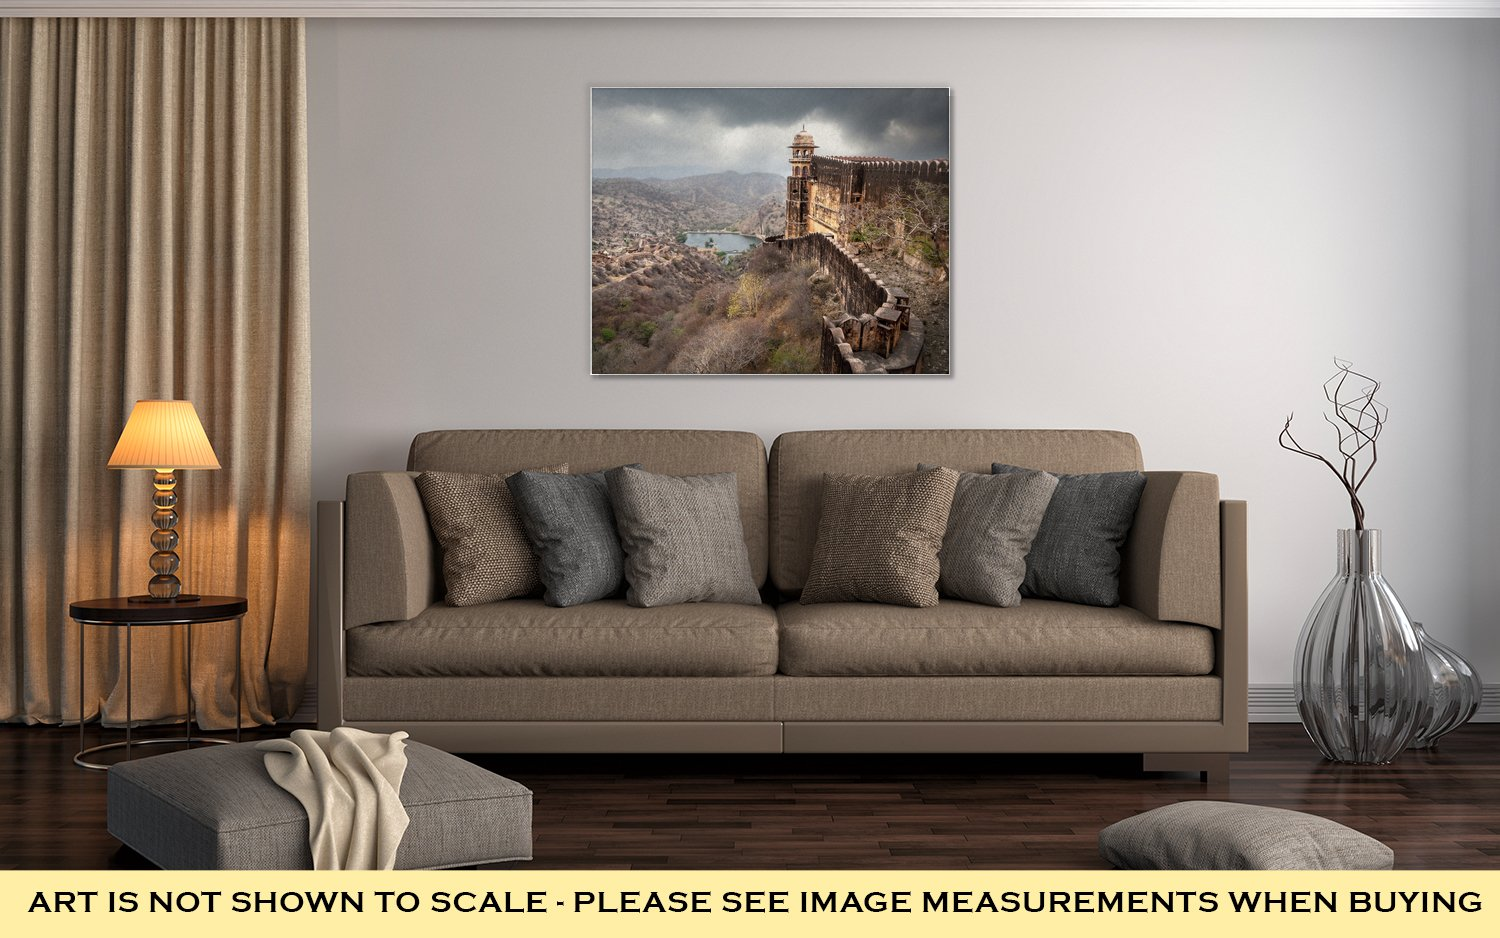 Ashley Canvas Jaigarh Fort In India, Kitchen Bedroom Living Room Art, Color 24x30, AG5961205